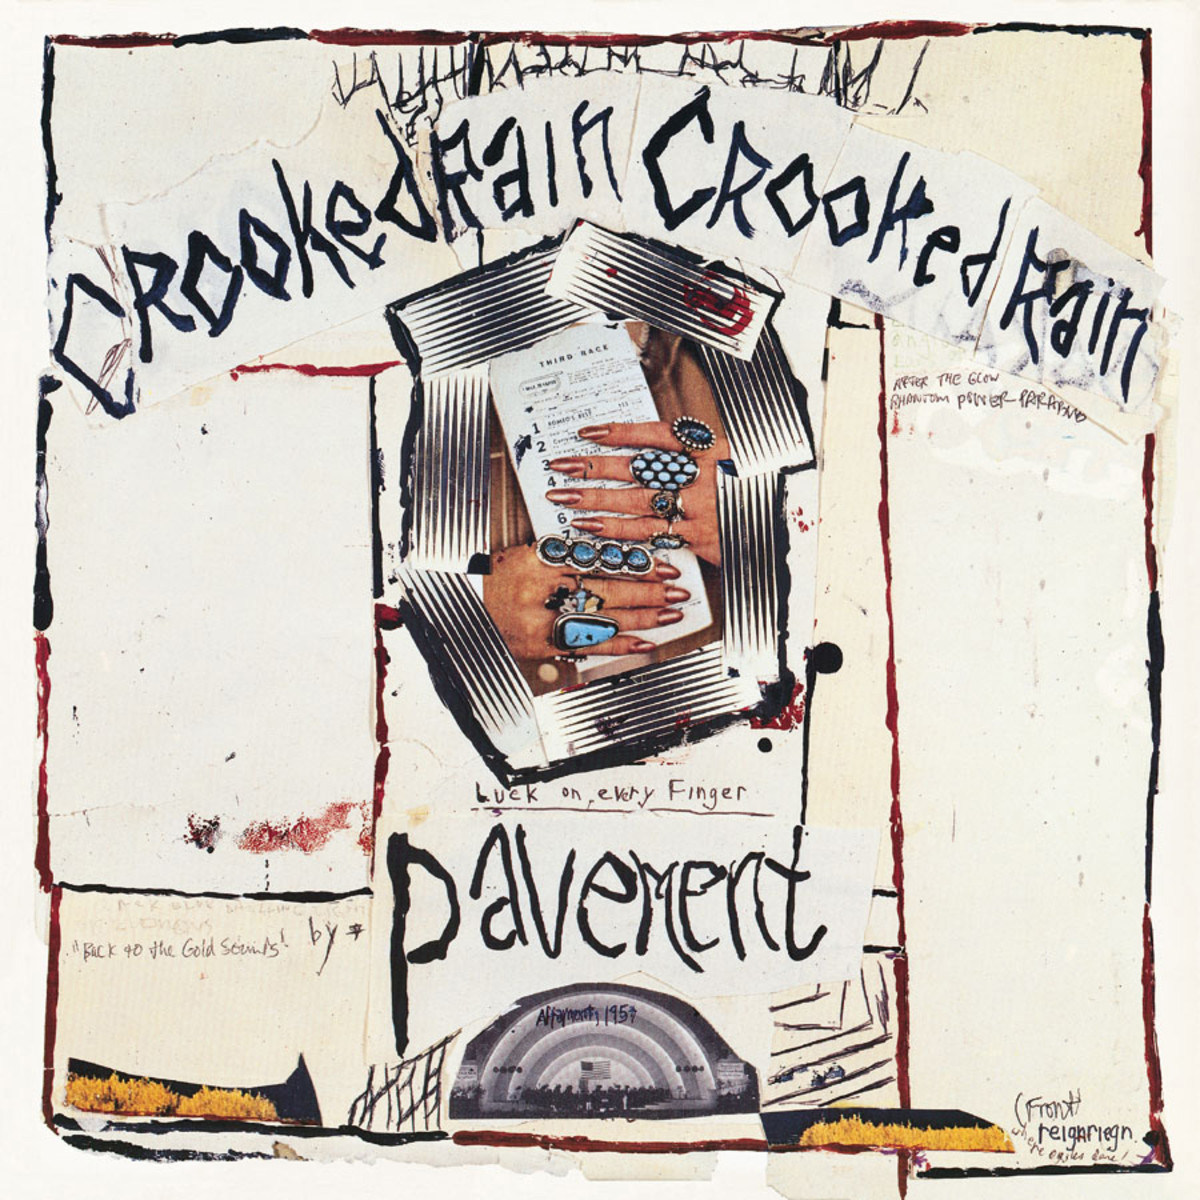 Pavement's sophomore effort, released in 1994.  (image from www.matadorrecords.com)